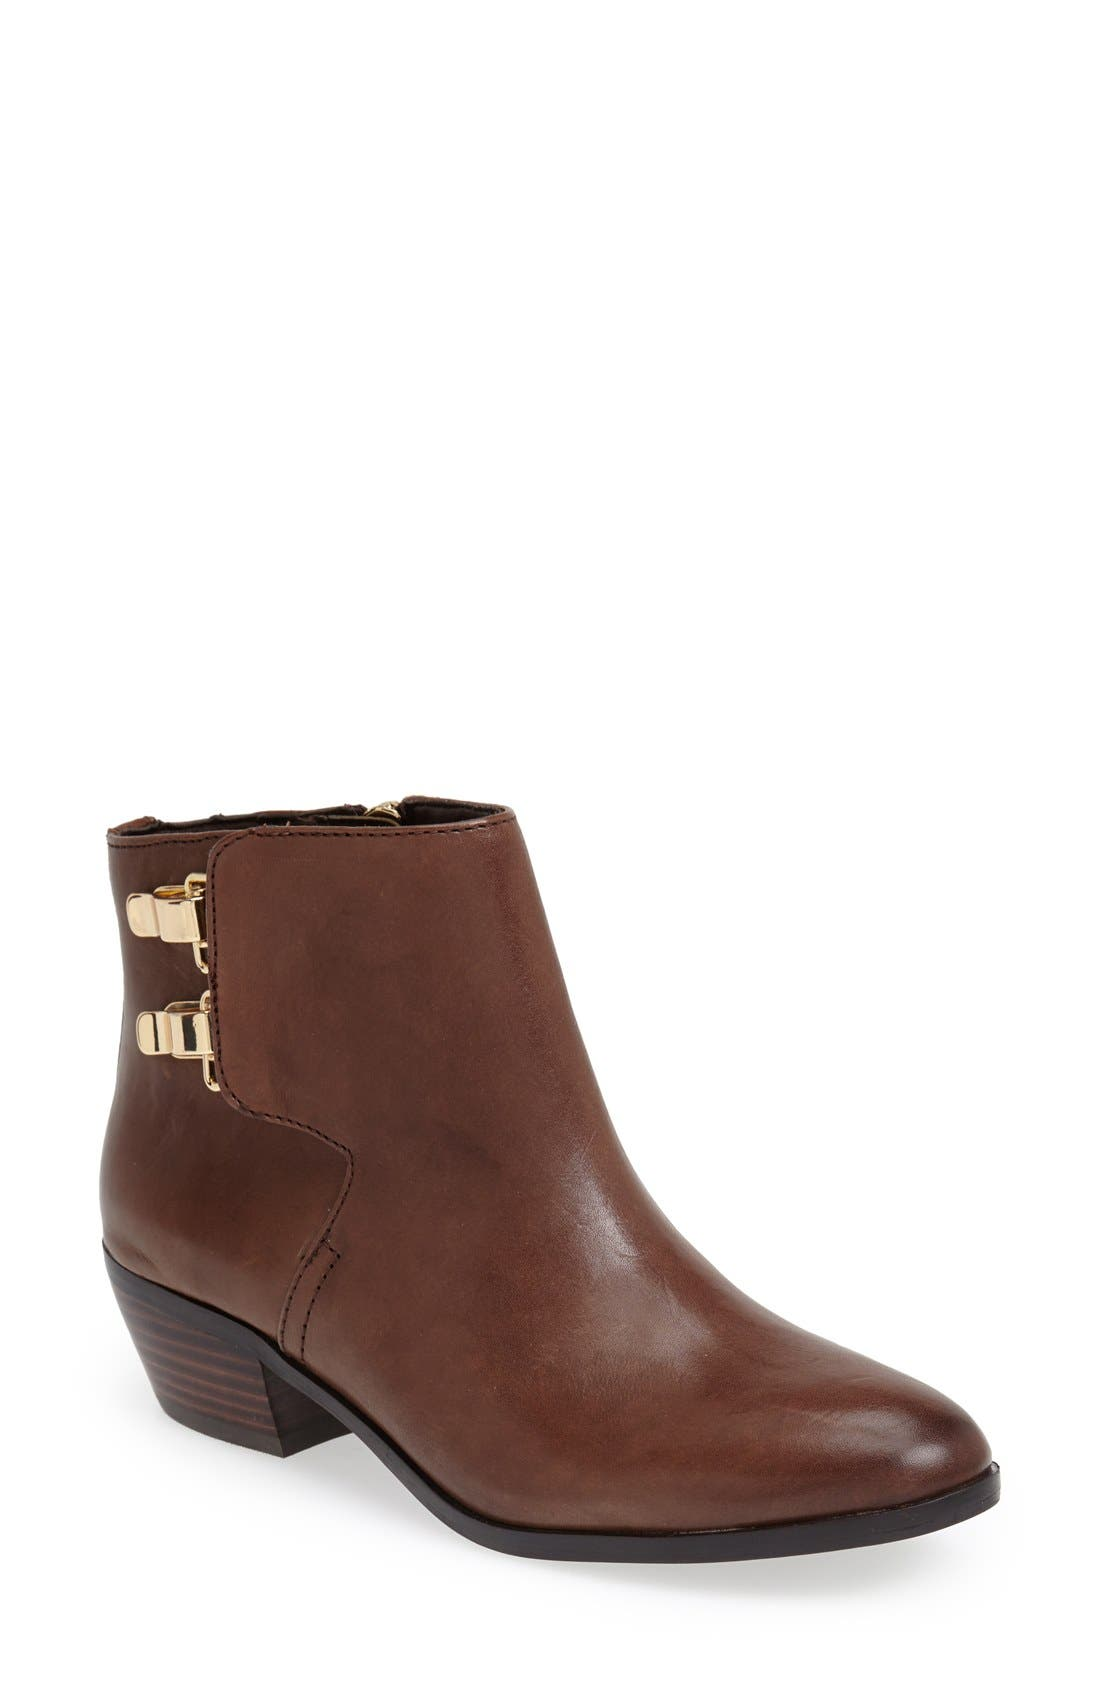 Main Image - Sam Edelman 'Peter' Leather Bootie (Women)